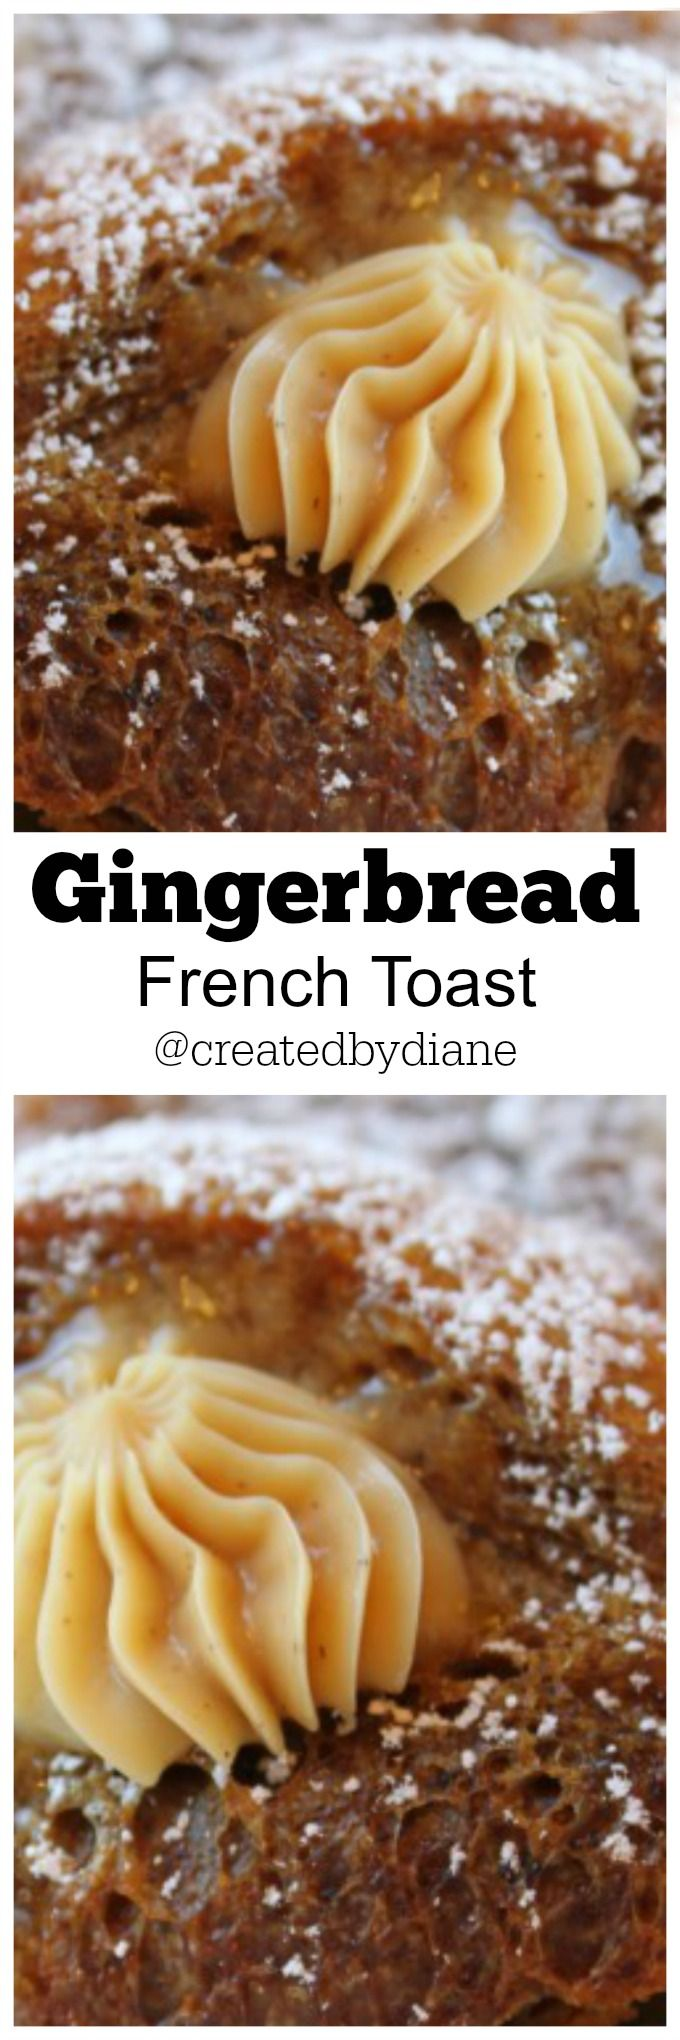 gingerbread french toast @createdbydiane